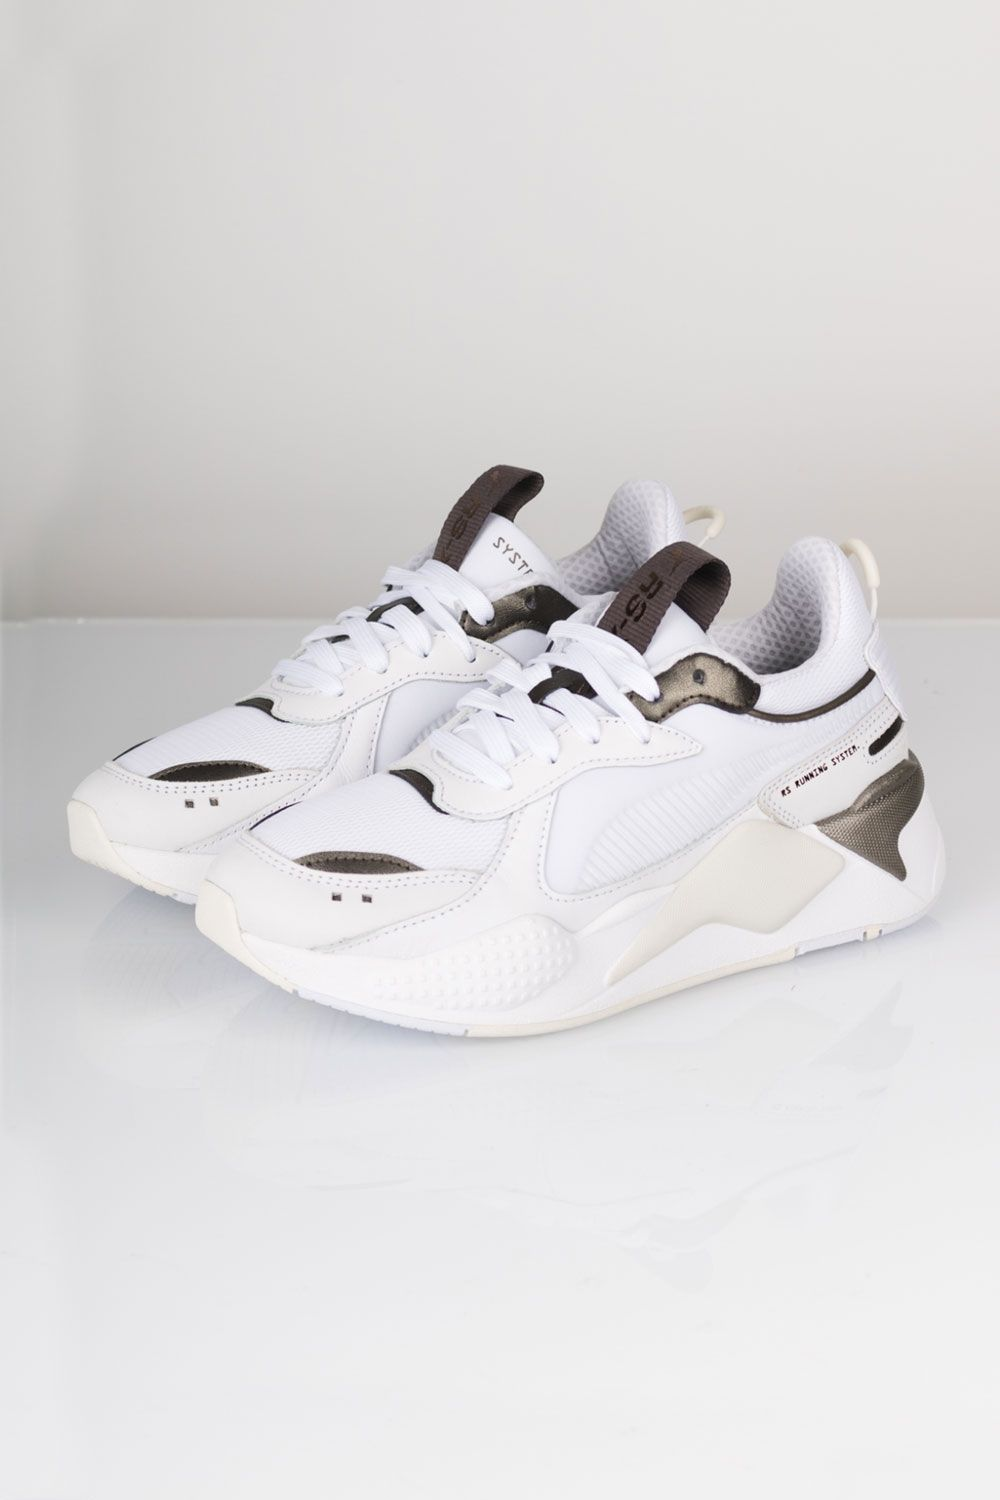 Puma - Sneakers - RS-X Trophy - White/Bronze | Chaussure ...